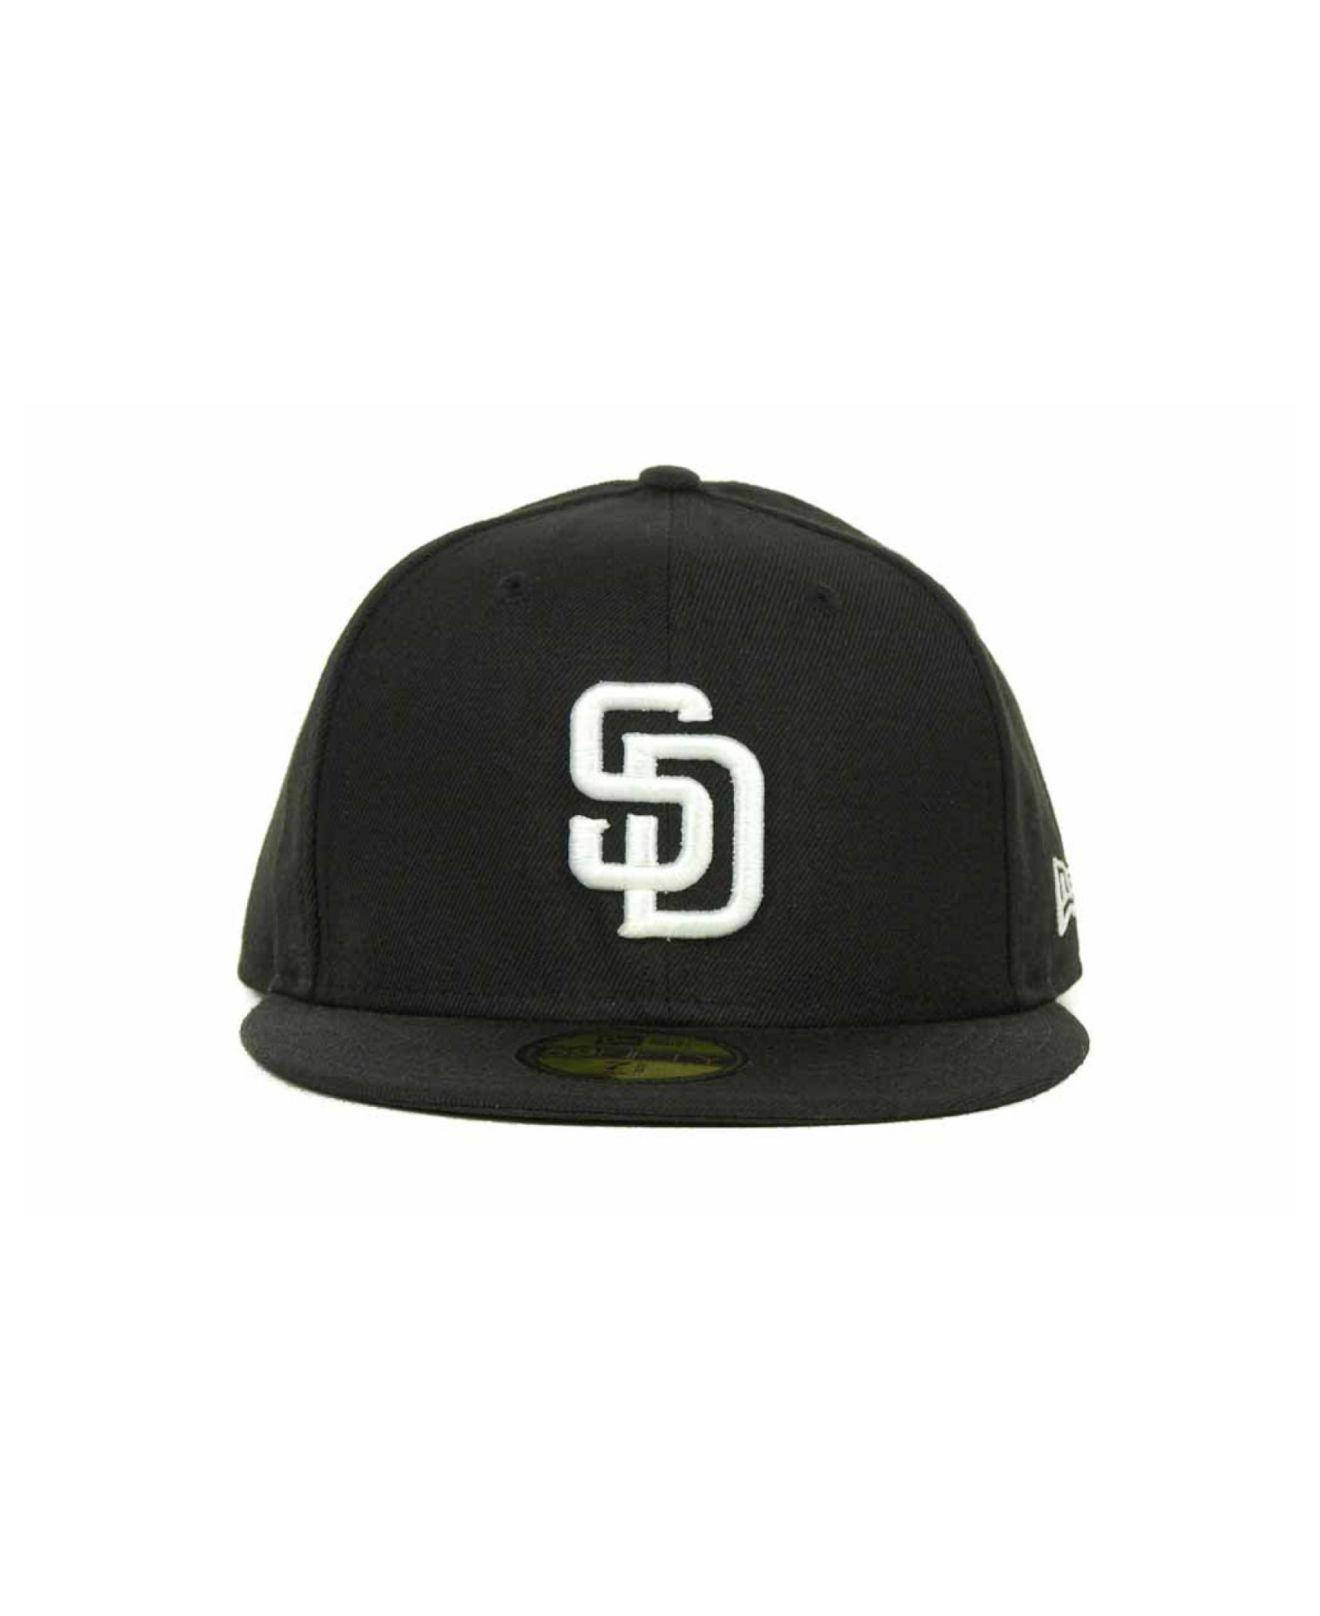 b4b6379455d Lyst - KTZ San Diego Padres Mlb B-dub 59fifty Cap in Black for Men